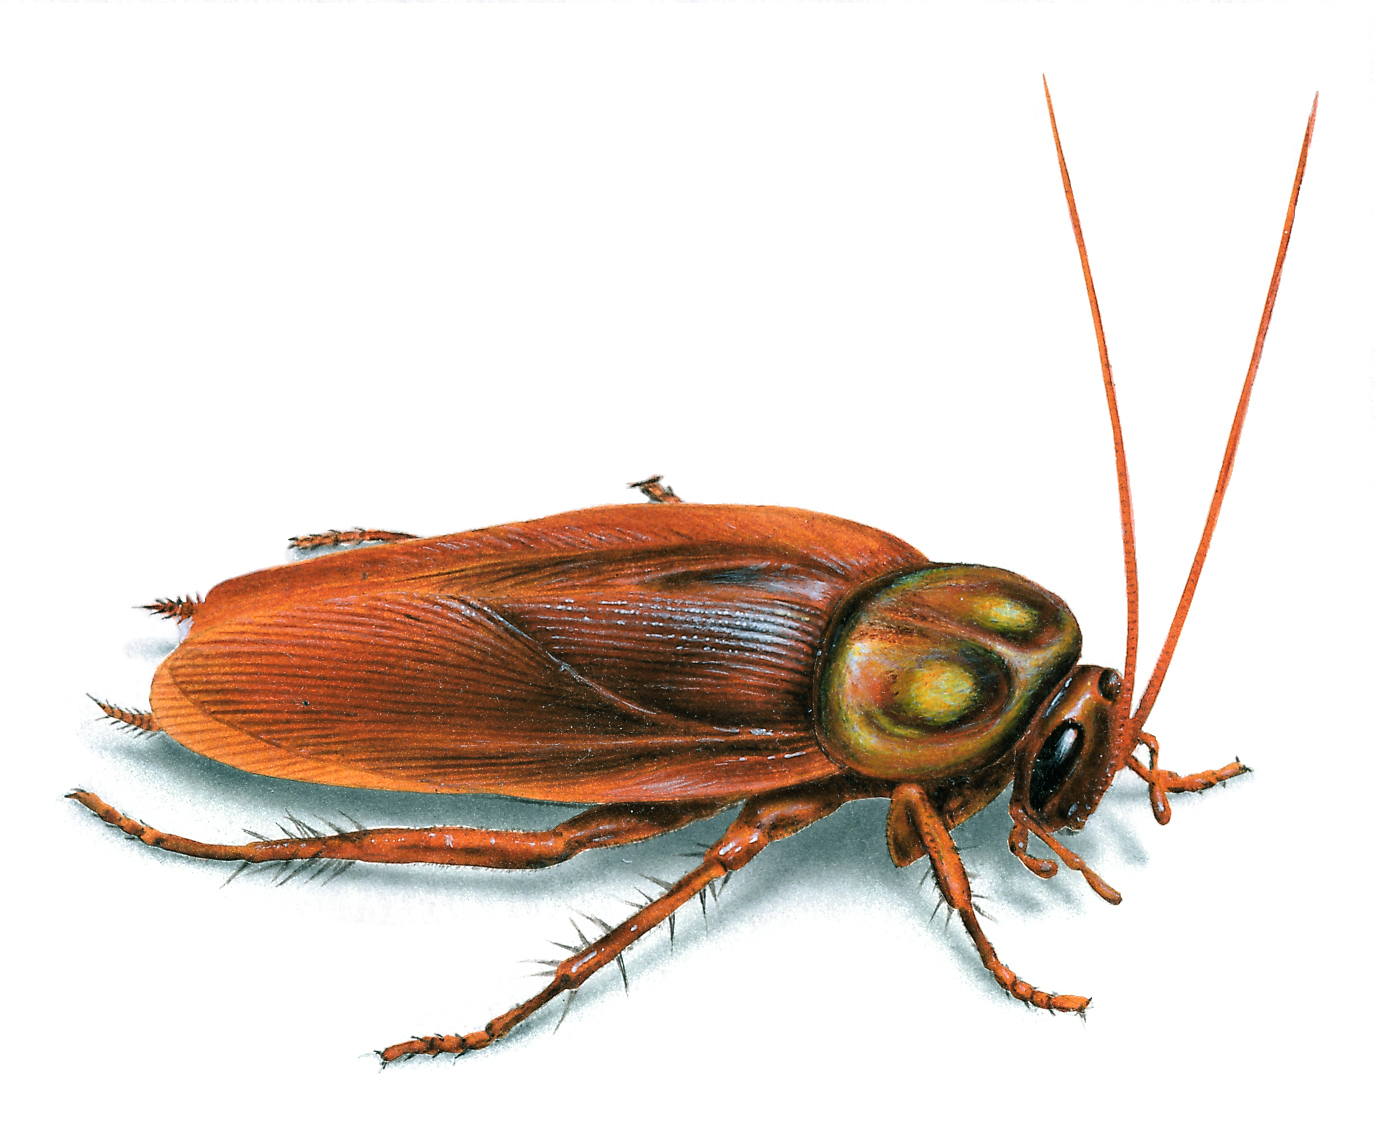 MENDEL'S  LAWS  OF  INHERITANCE  VS  HUMAN  EVOLUTION : THE  CONSTANCY  OF  THE  GENETIC  CODE  PERMIT  THE  GENES  TO  HAVE  THE  SAME  EFFECTS  ON  THEIR  CARRIERS  FROM  GENERATION  TO  GENERATION . AMERICAN  COCKROACH  IS  EXISTING  ON  EARTH  FOR  MILLIONS  OF  YEARS .